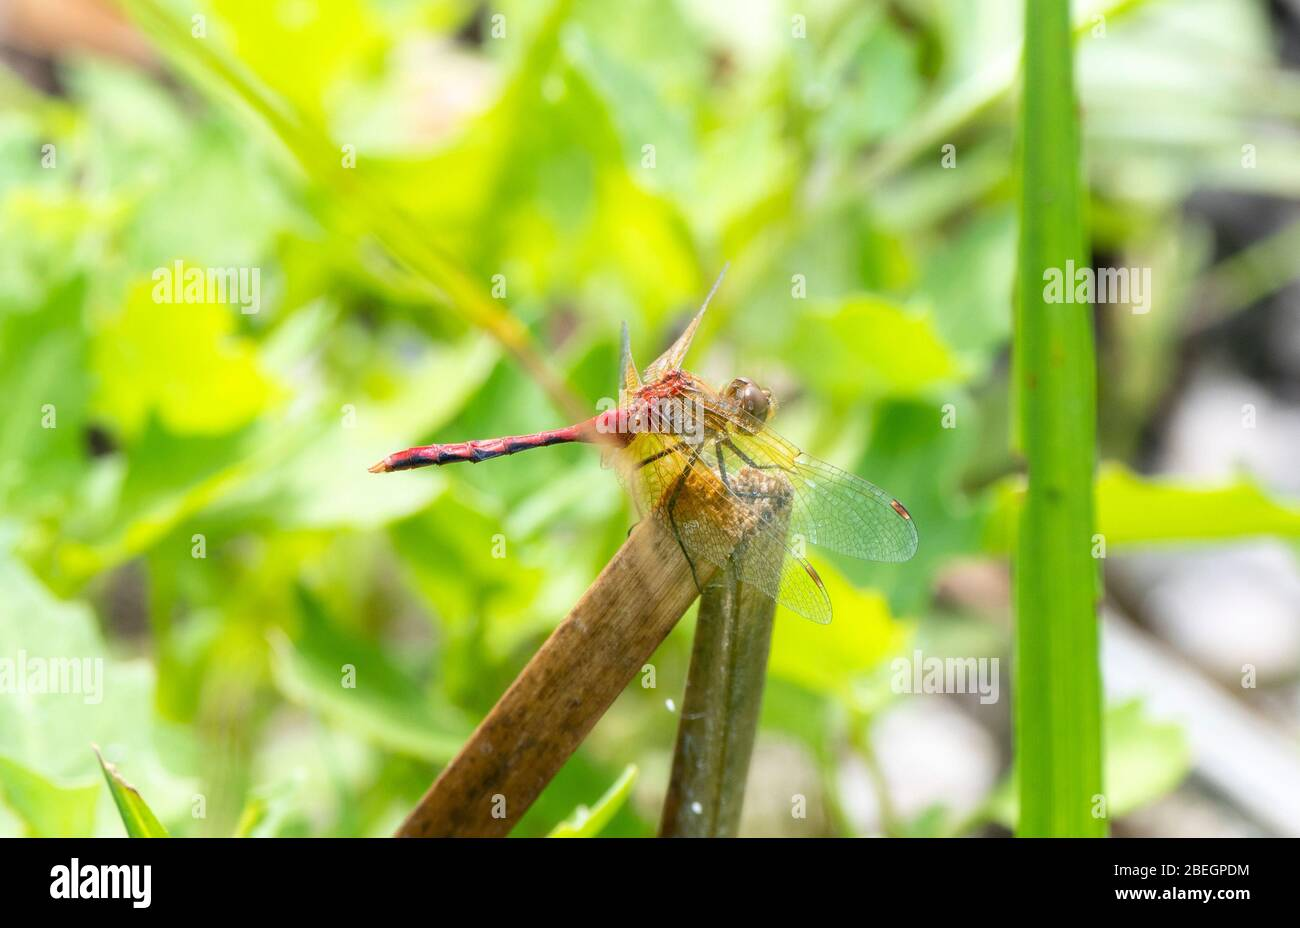 Ruby Meadowhawk Dragonfly (Sympetrum rubicundulum) Perched on a Vegetation in Eastern Colorado Stock Photo